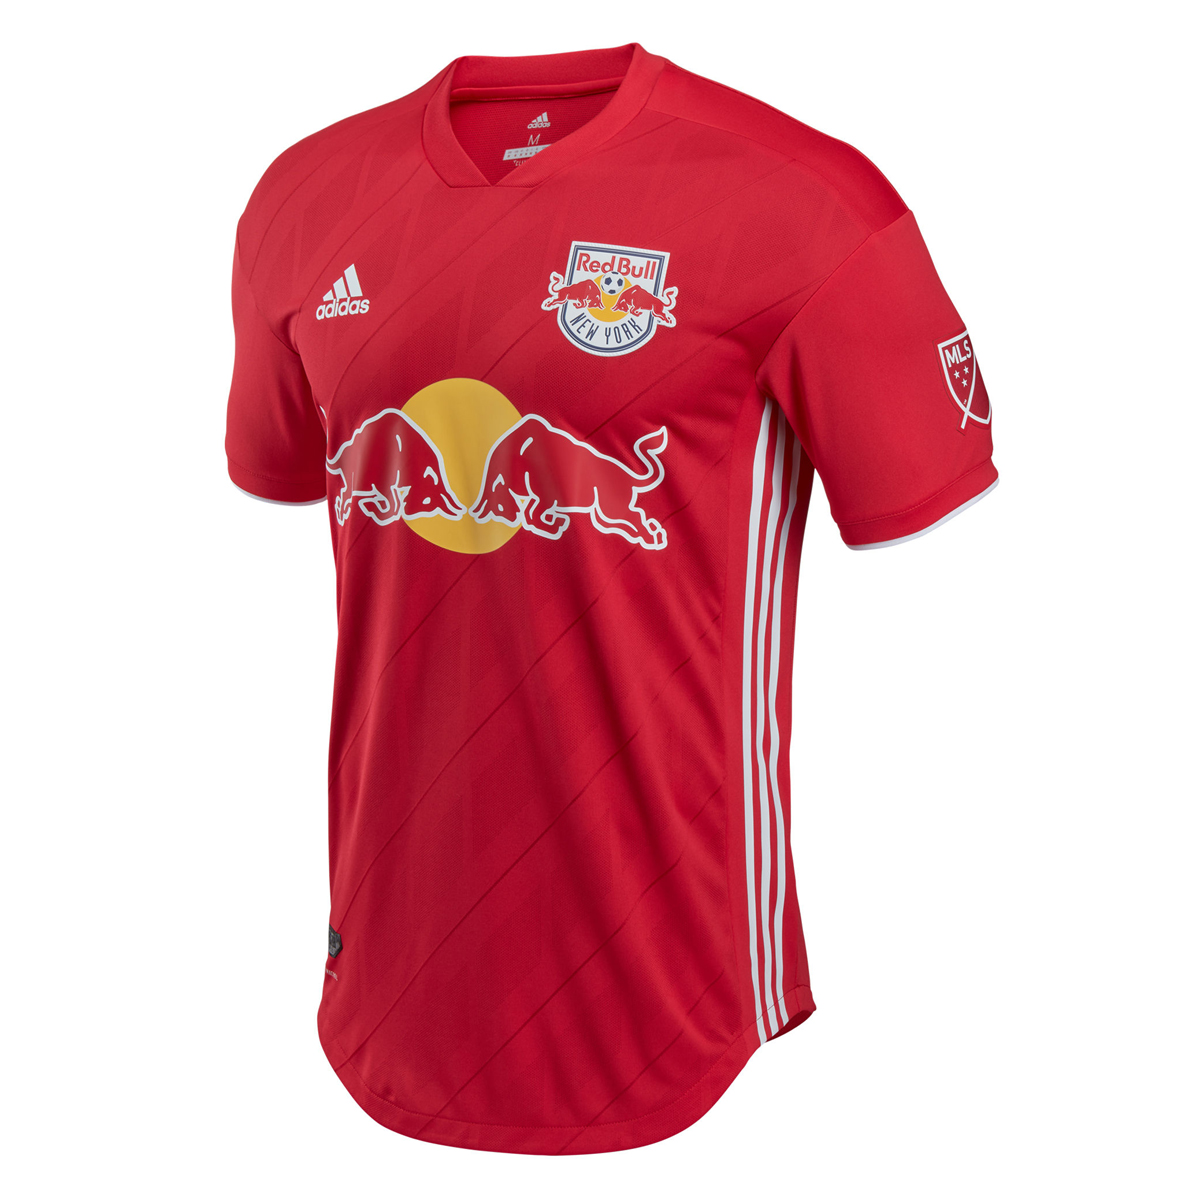 Match Version New York Red Bulls 2018/19 Home Shirt Soccer Jersey